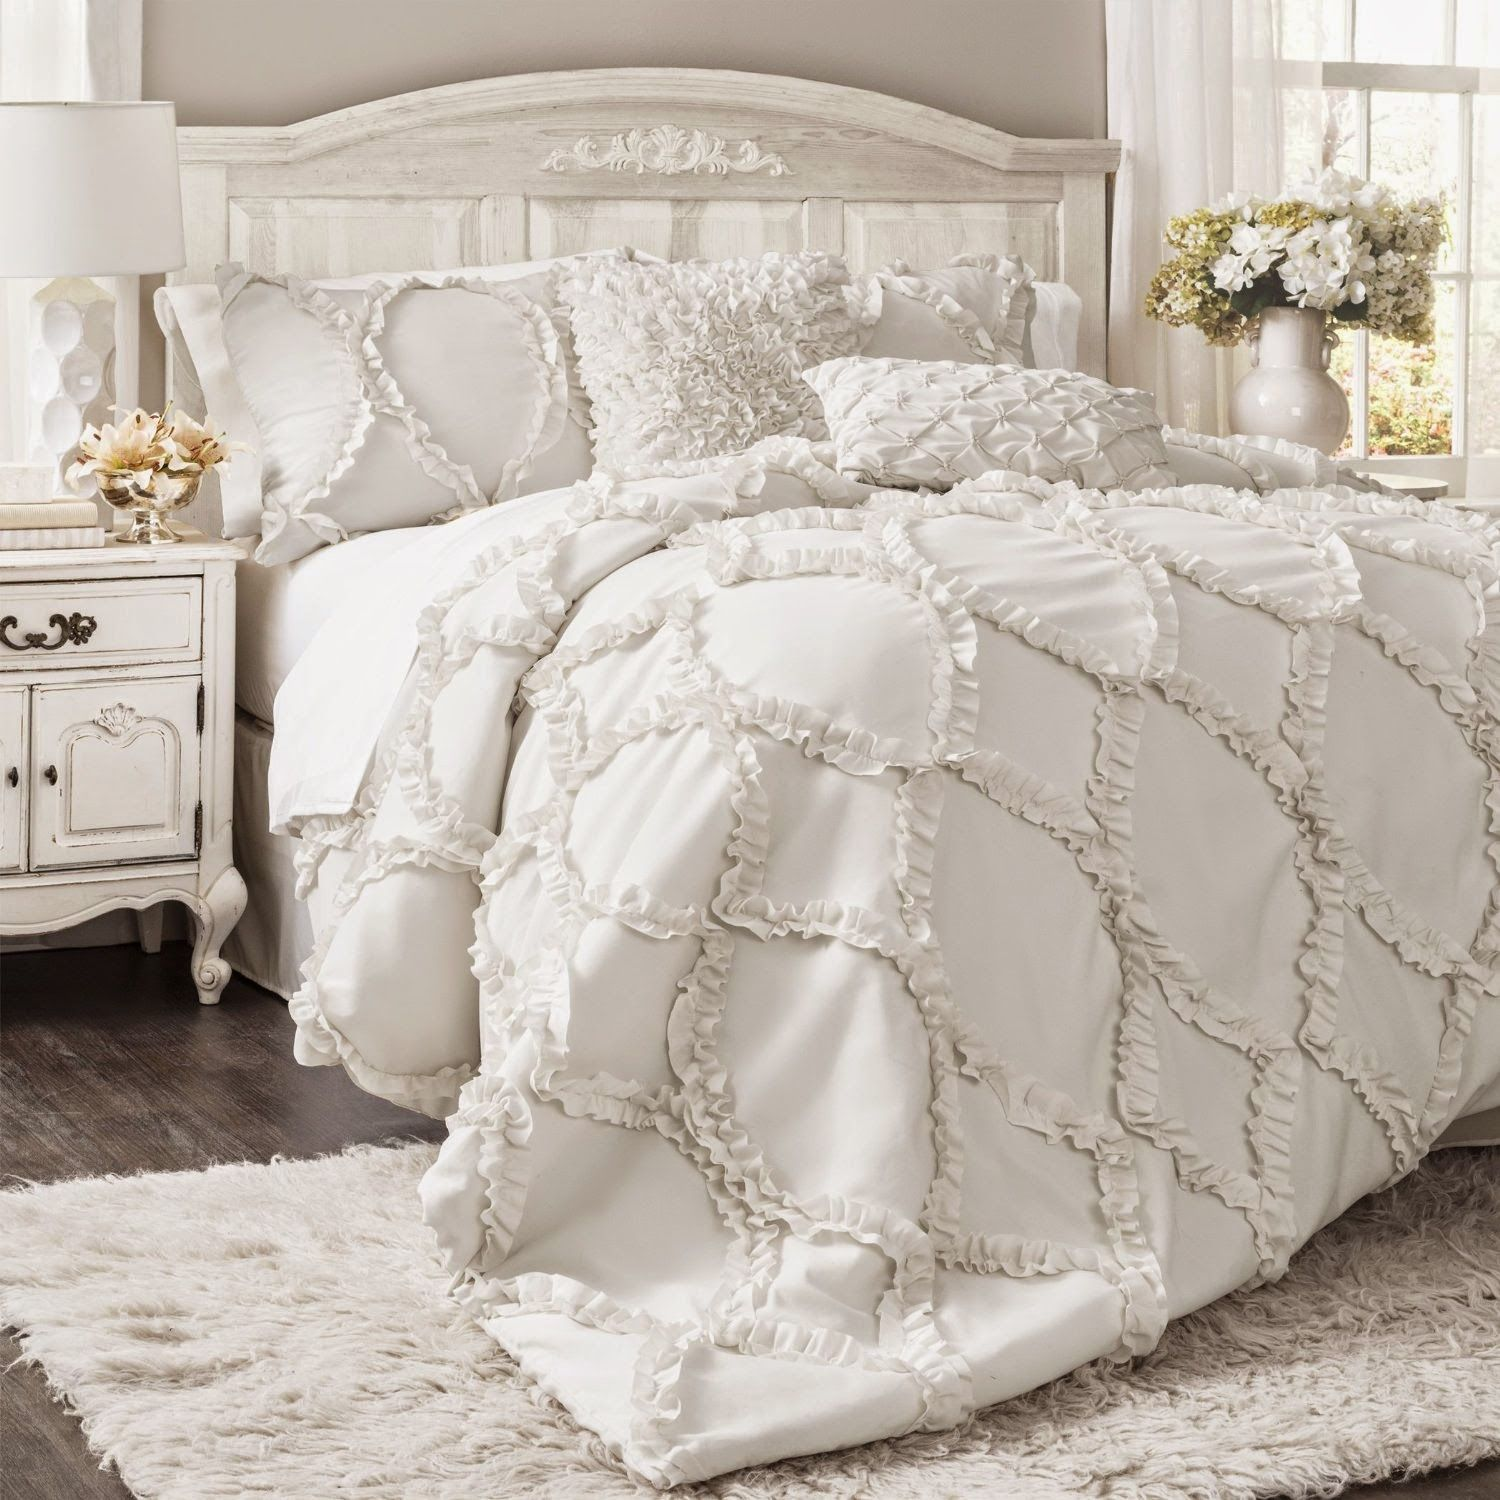 Bedroom Shabby Chic Wallpaper: 13 Bedding Sets That Won't Break The Budget